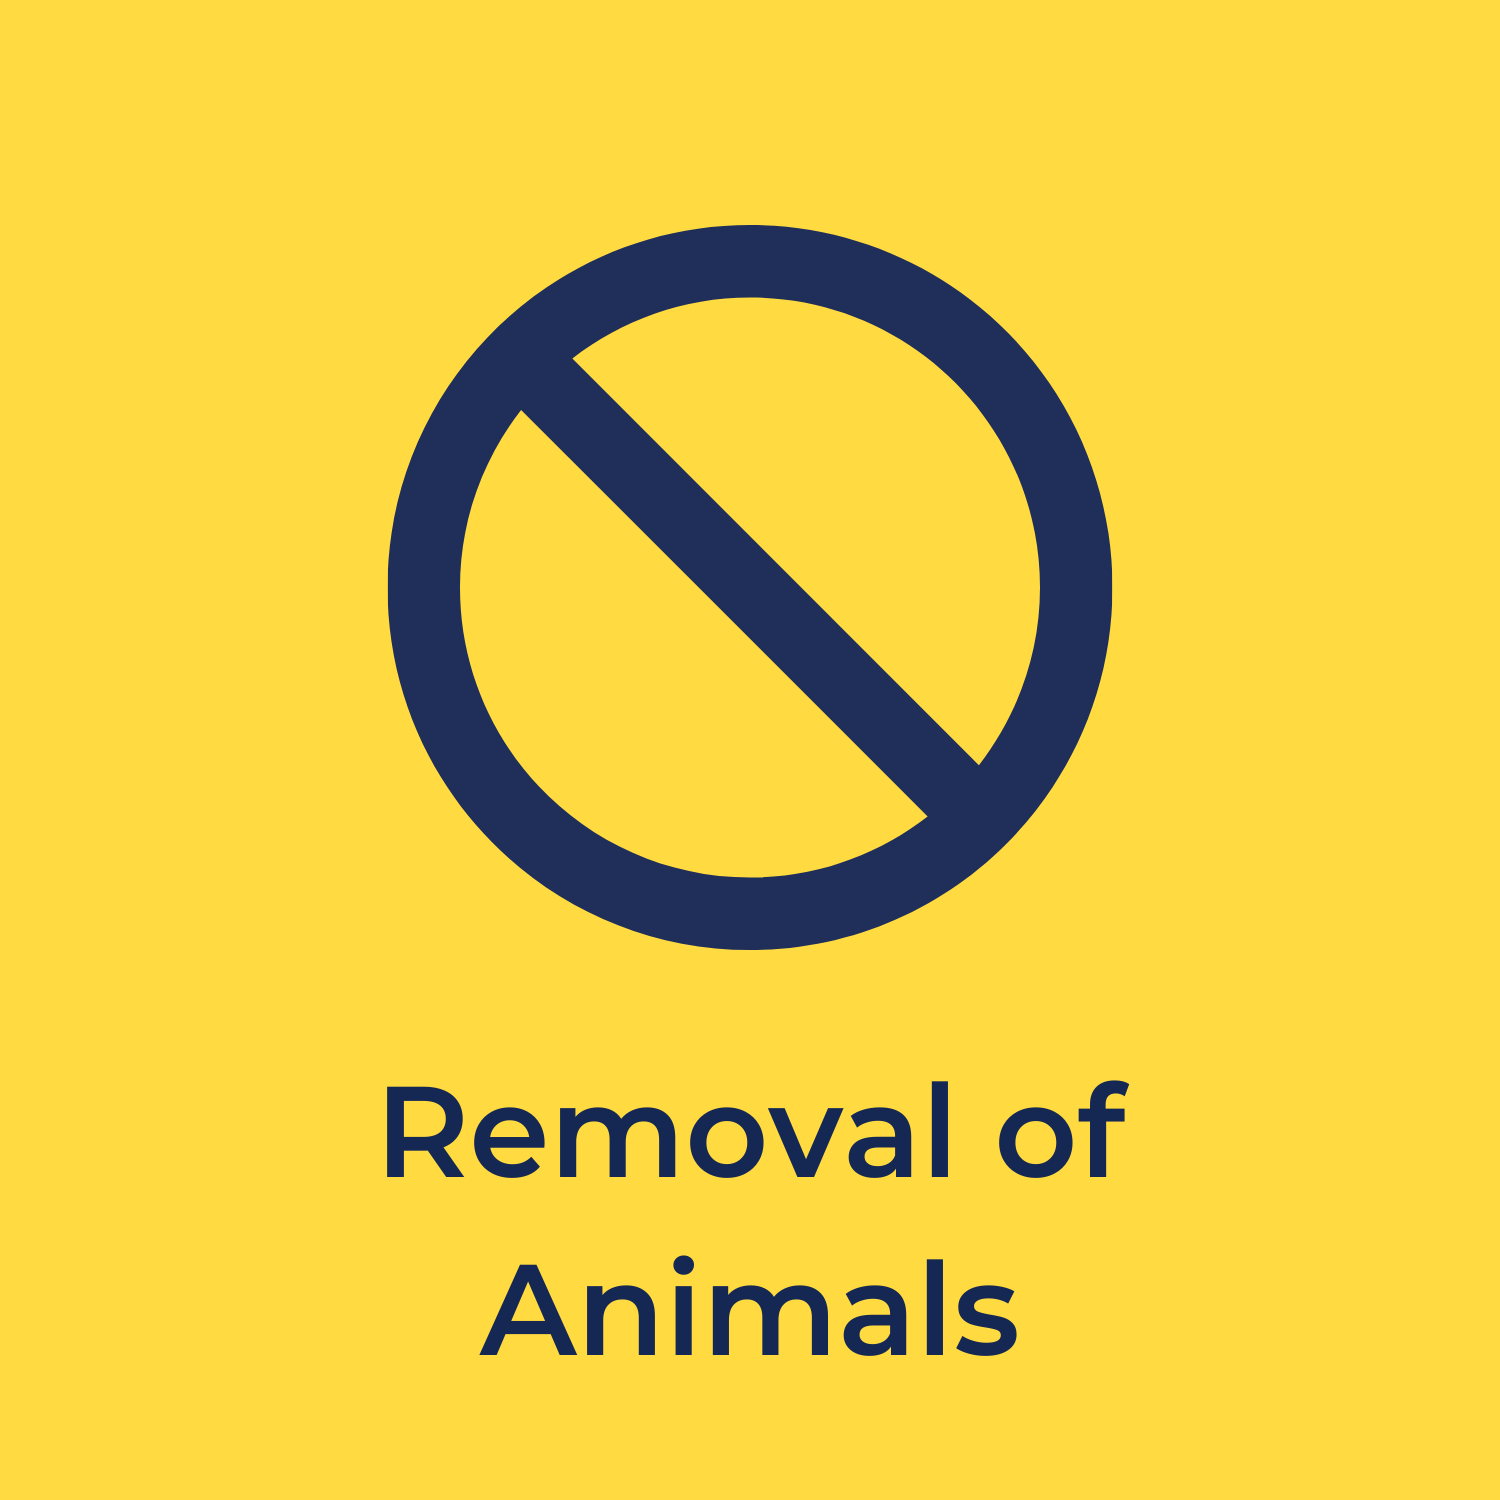 """yellow background, in the center is a blue circle with a diagonal line going across it, and below reads """"removal of animals"""""""